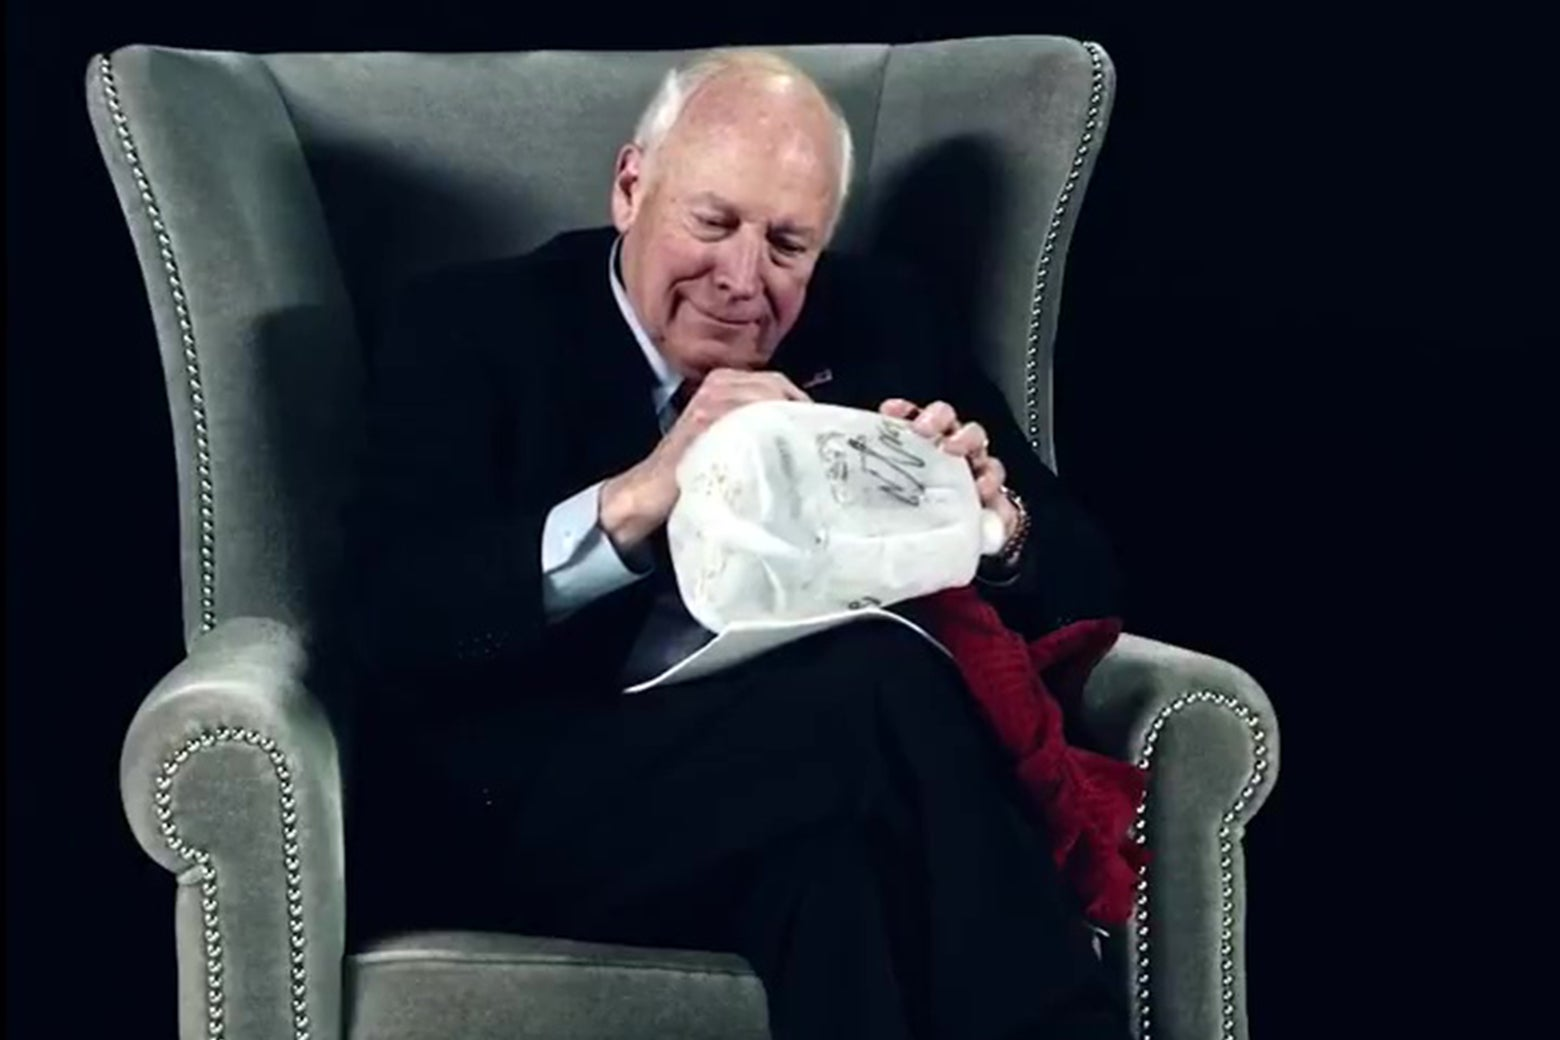 Dick Cheney signing a waterboarding kit.